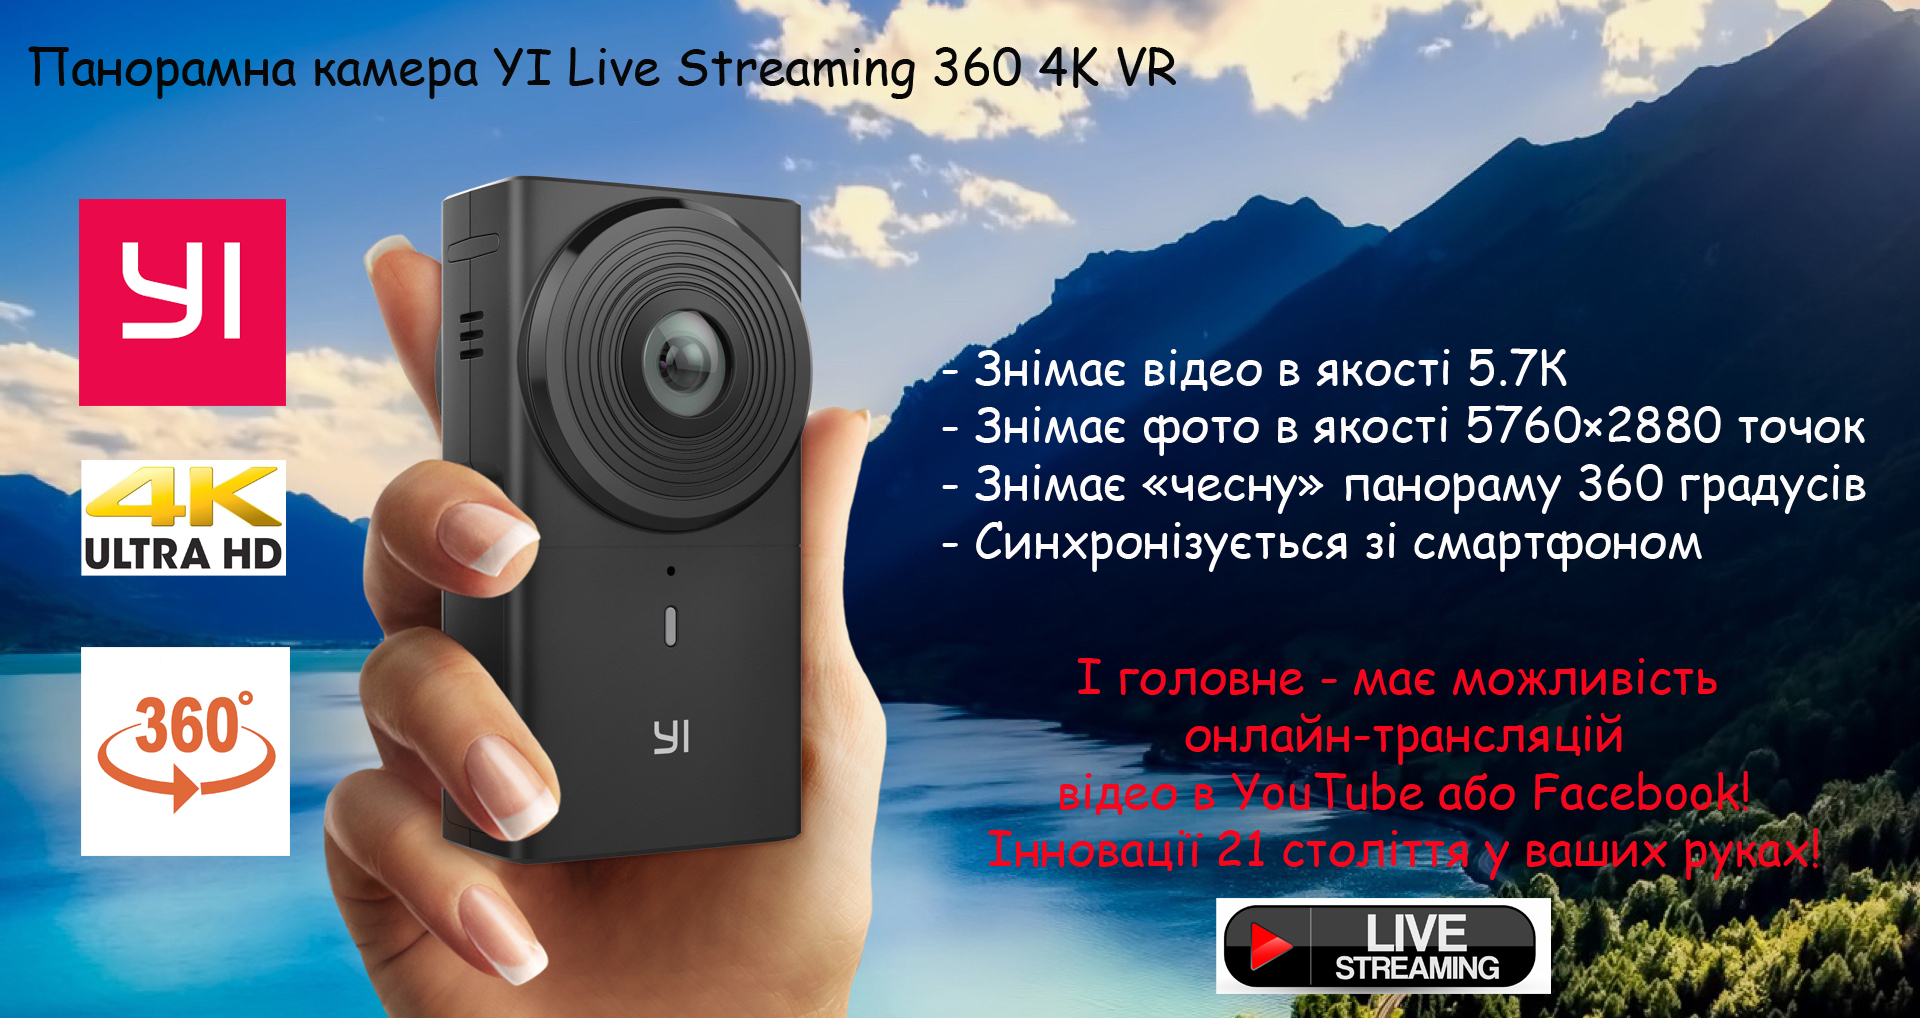 YI Live Streaming 360 4K VR